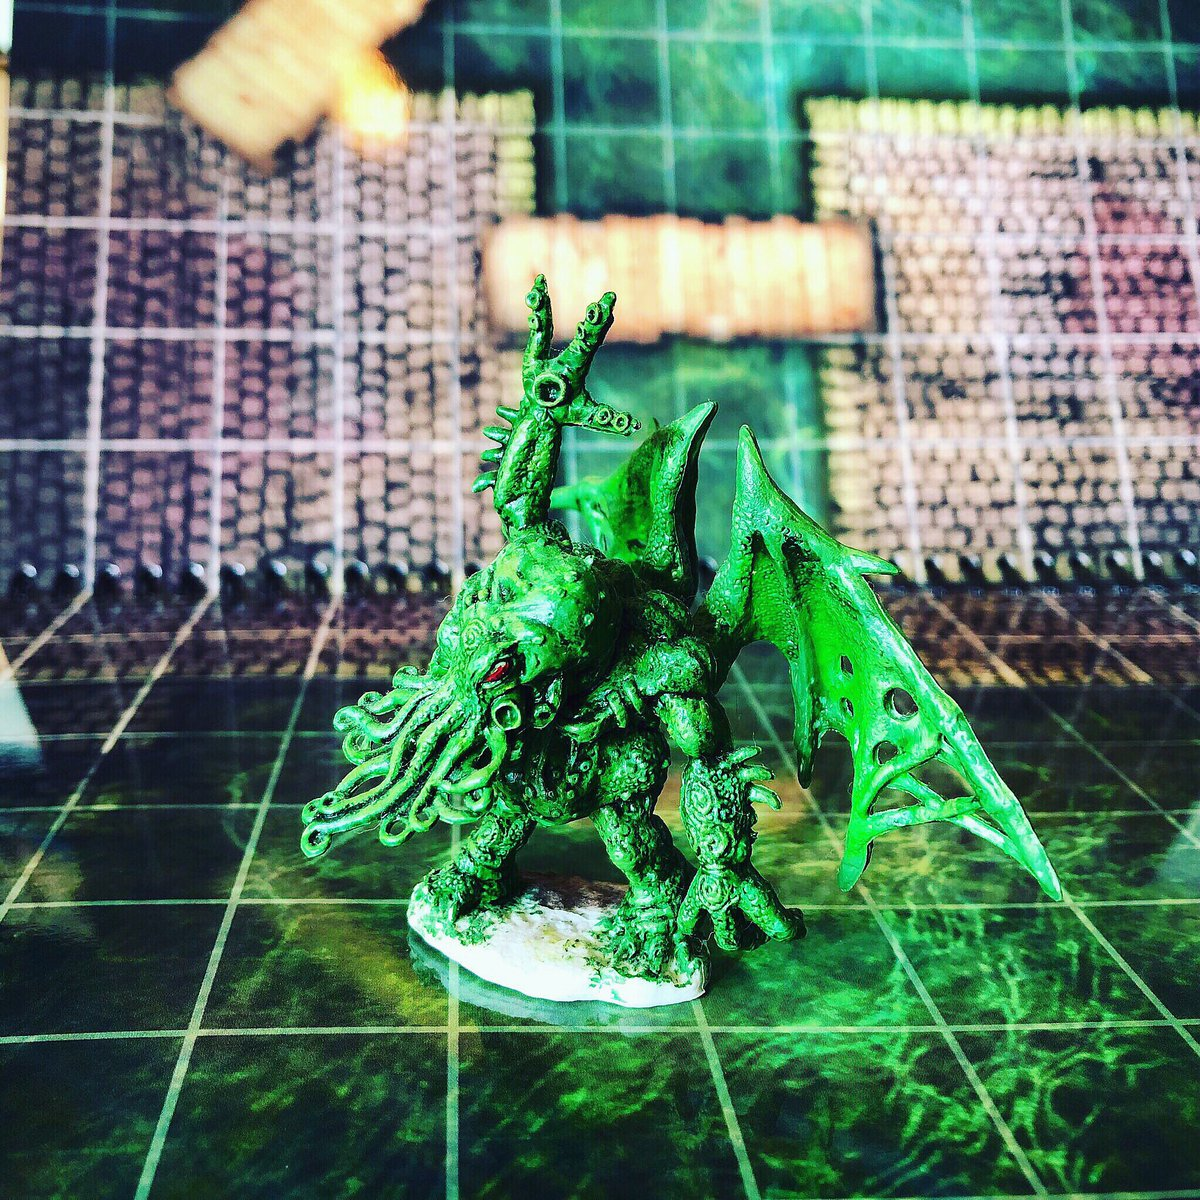 Hands up if you love sanity checks!! #rpg #ttrpg #lokebattlemats #battlemap #cthulhu #dnd #bigbookofbattlemats https://t.co/NSnUehaIlb